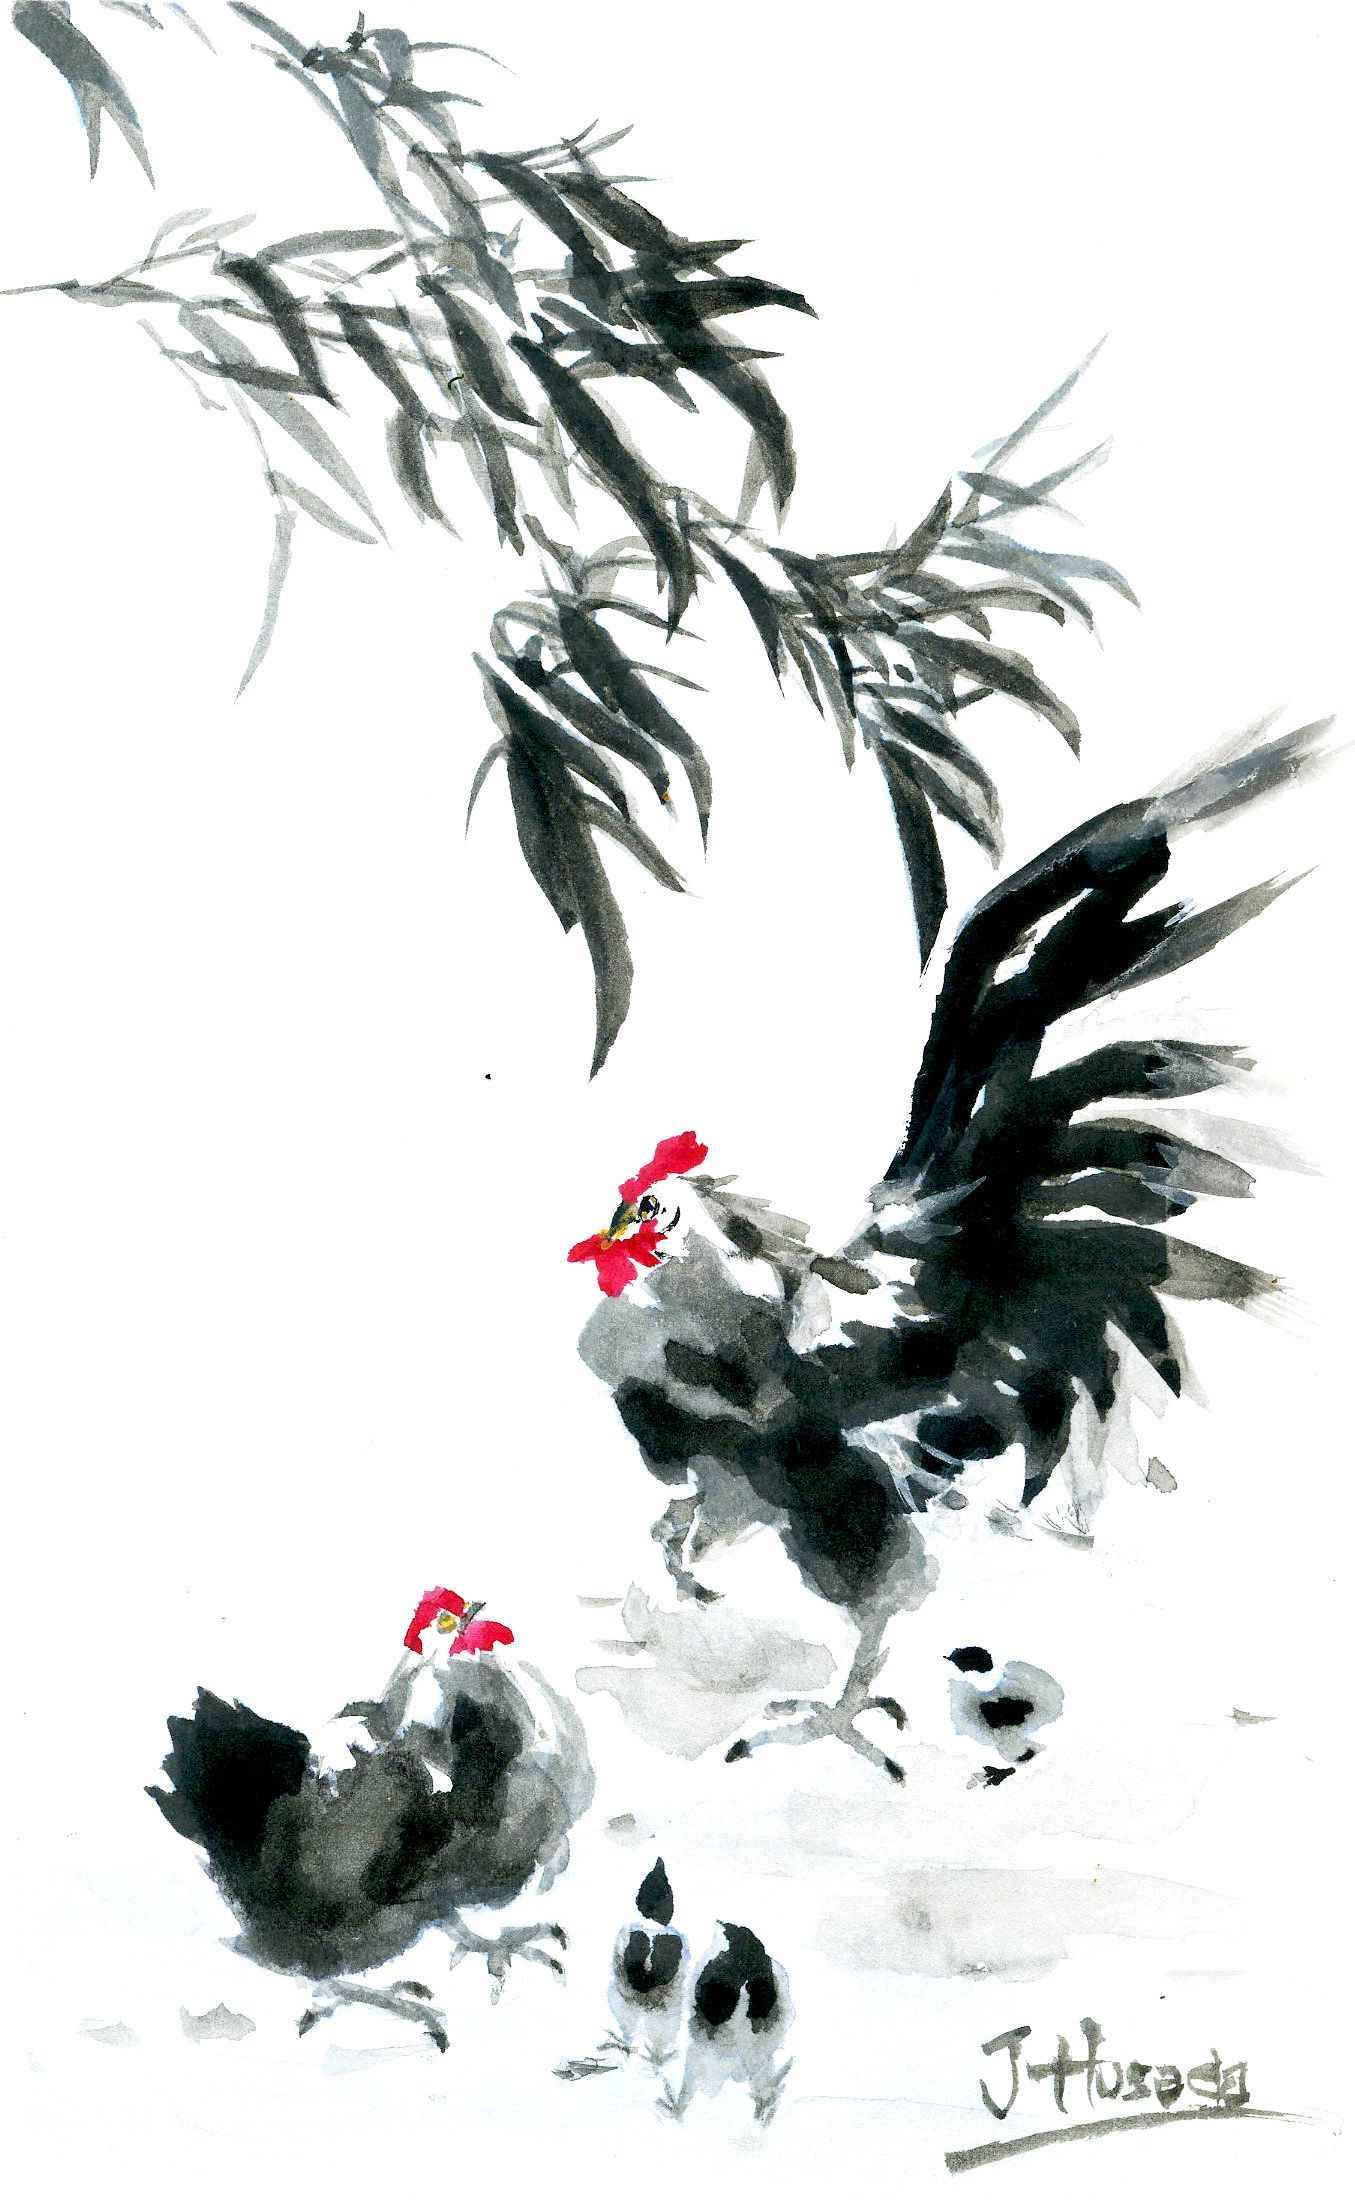 Chinese zodiac   Year of the Rooster (2005, 1993, 1981, 1969